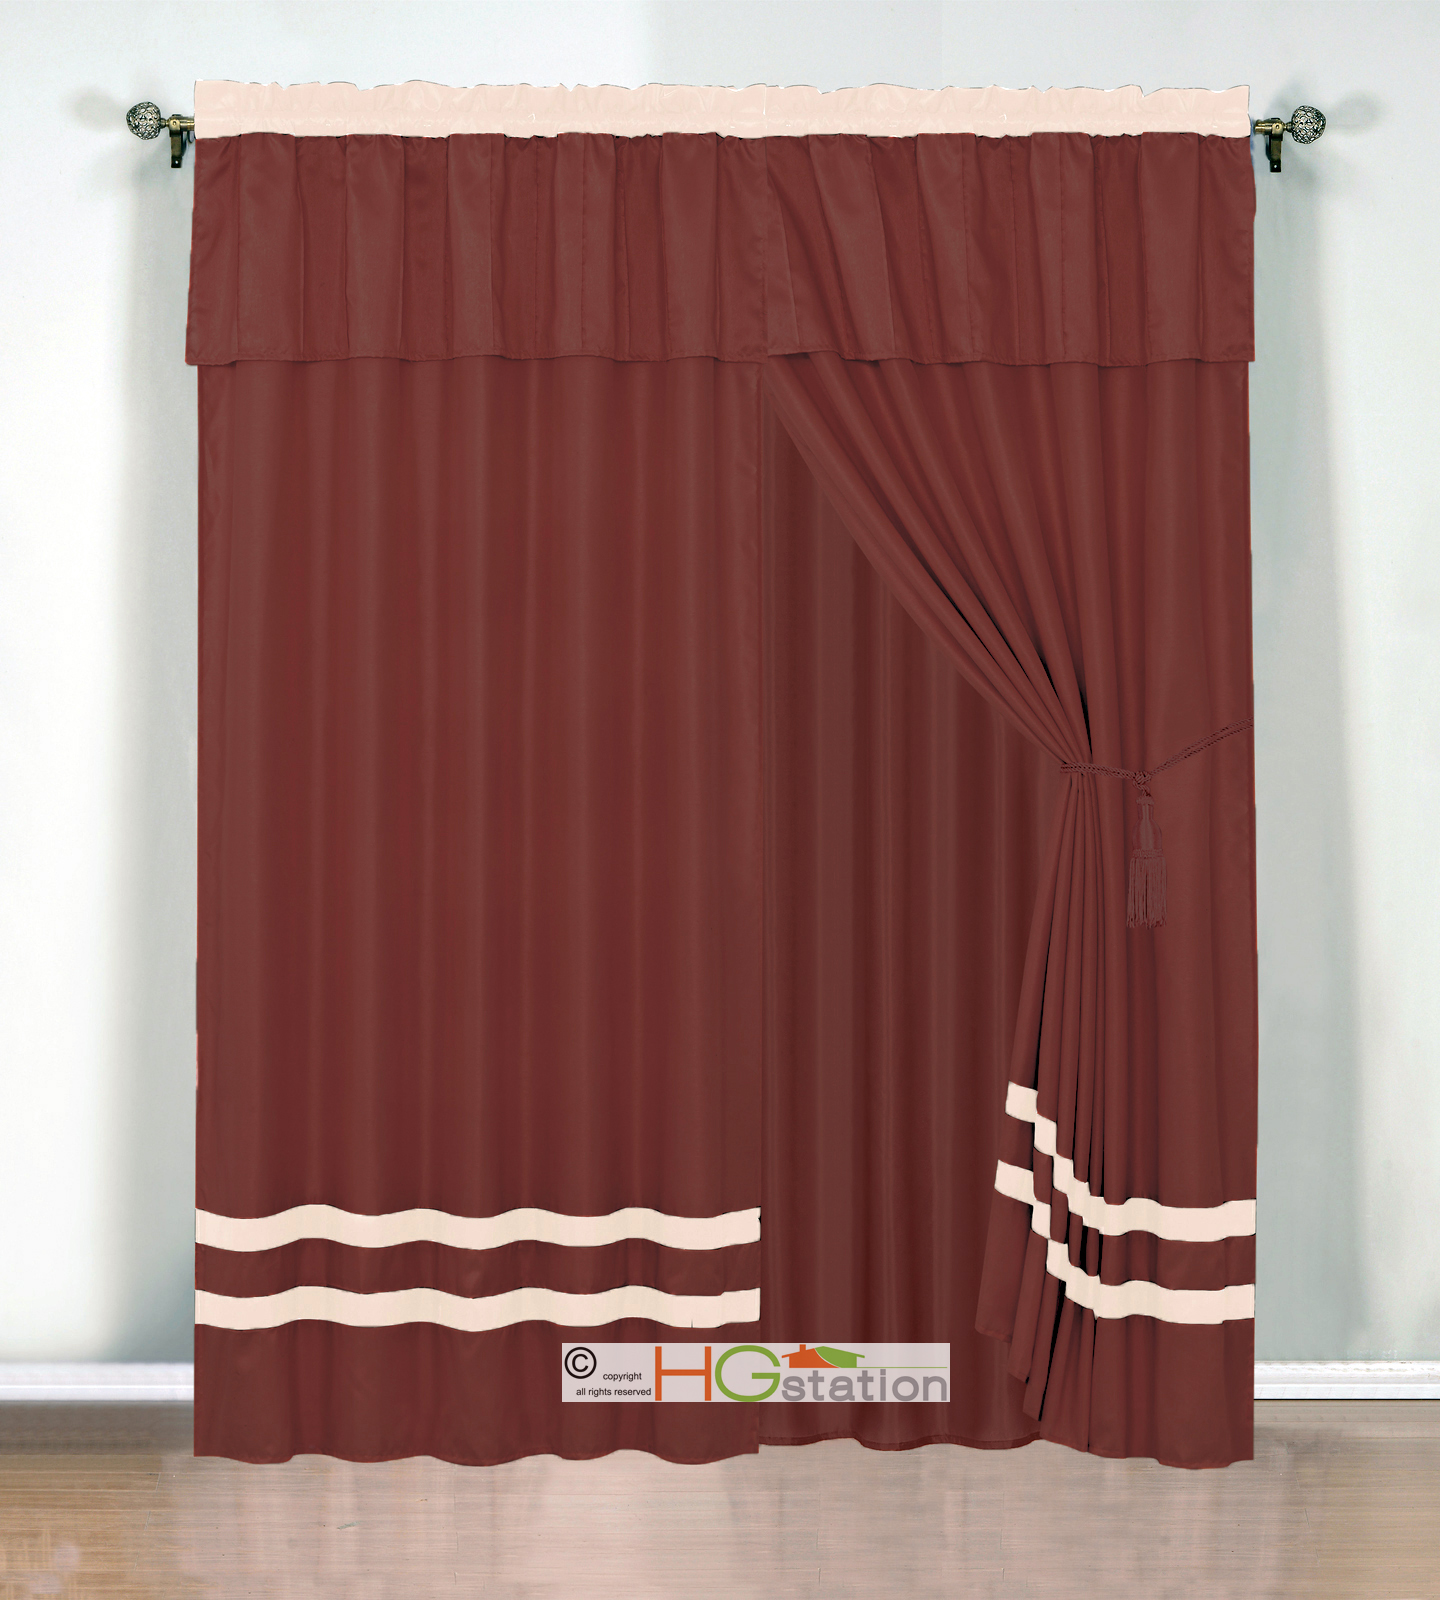 4 Pc Chic Stripe Solid Curtain Set Pleated Valance Drape Rust Orange Beige Ivory Ebay